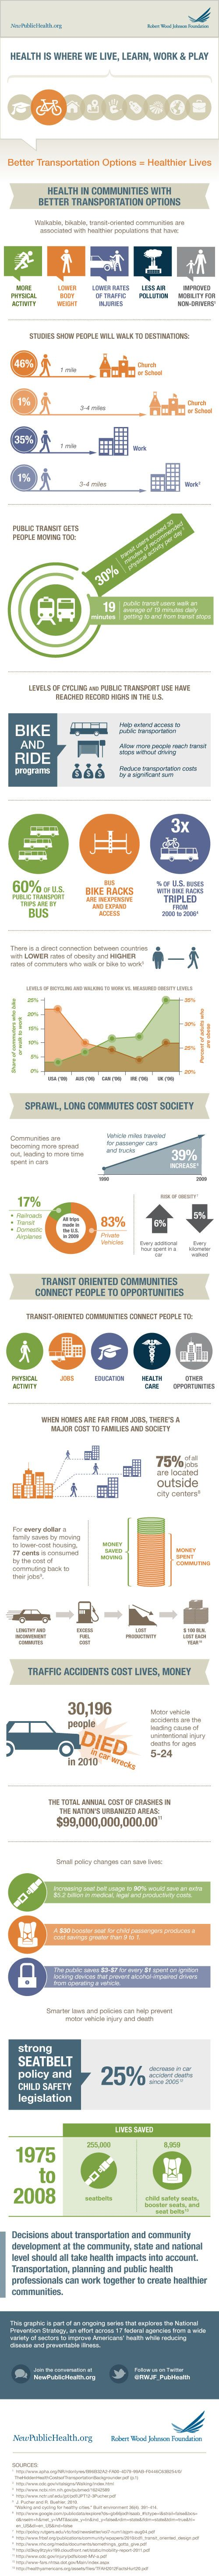 Health in Communities with Better Transportation Options